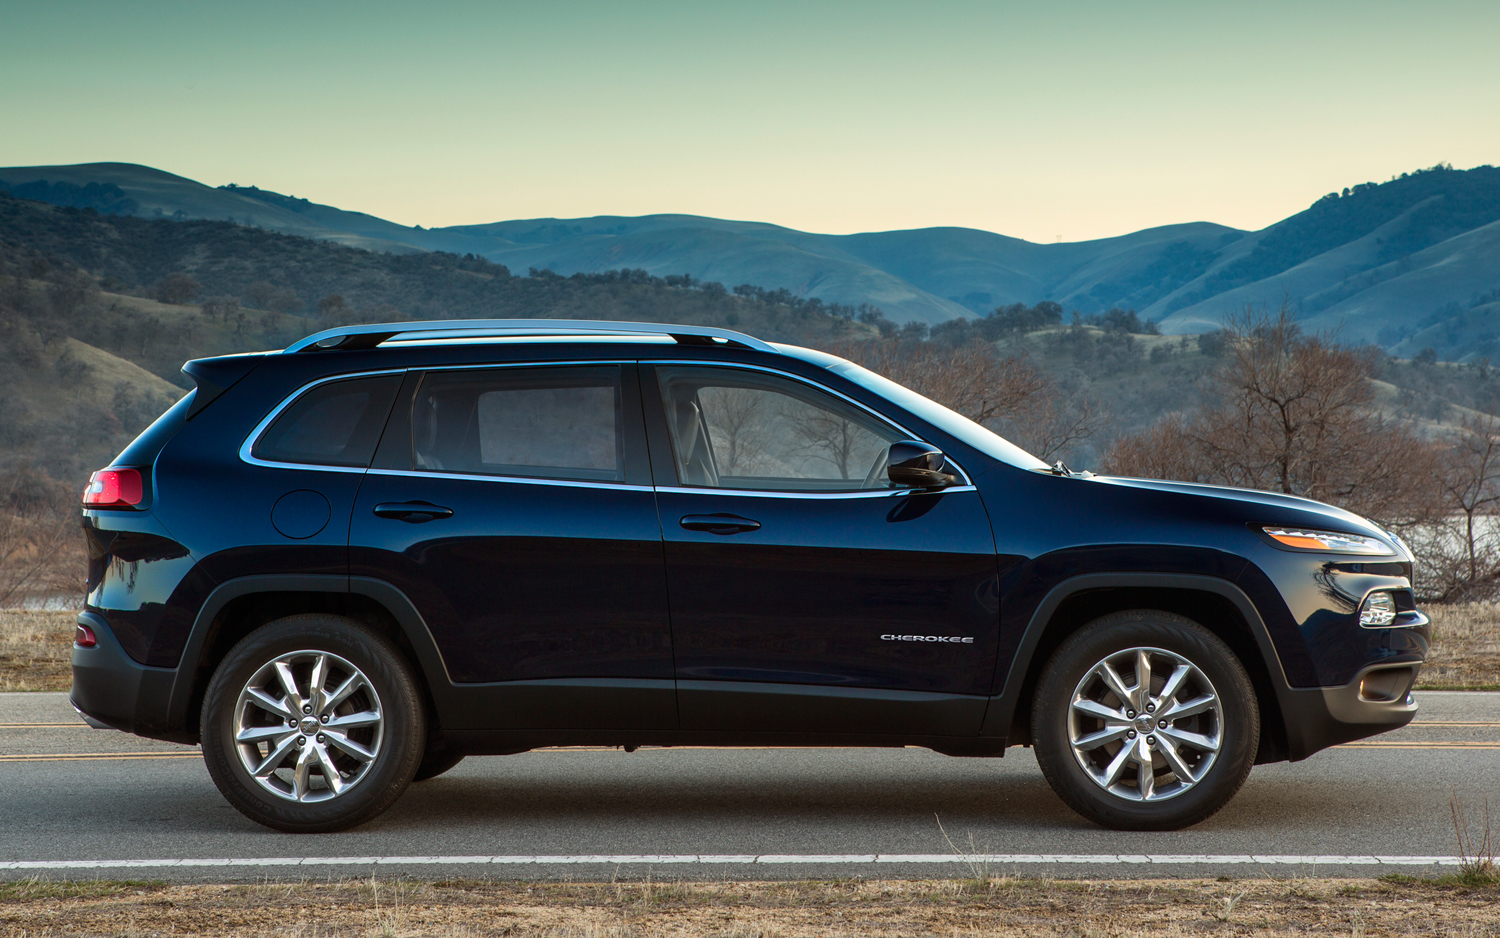 Pictures of jeep cherokee #10